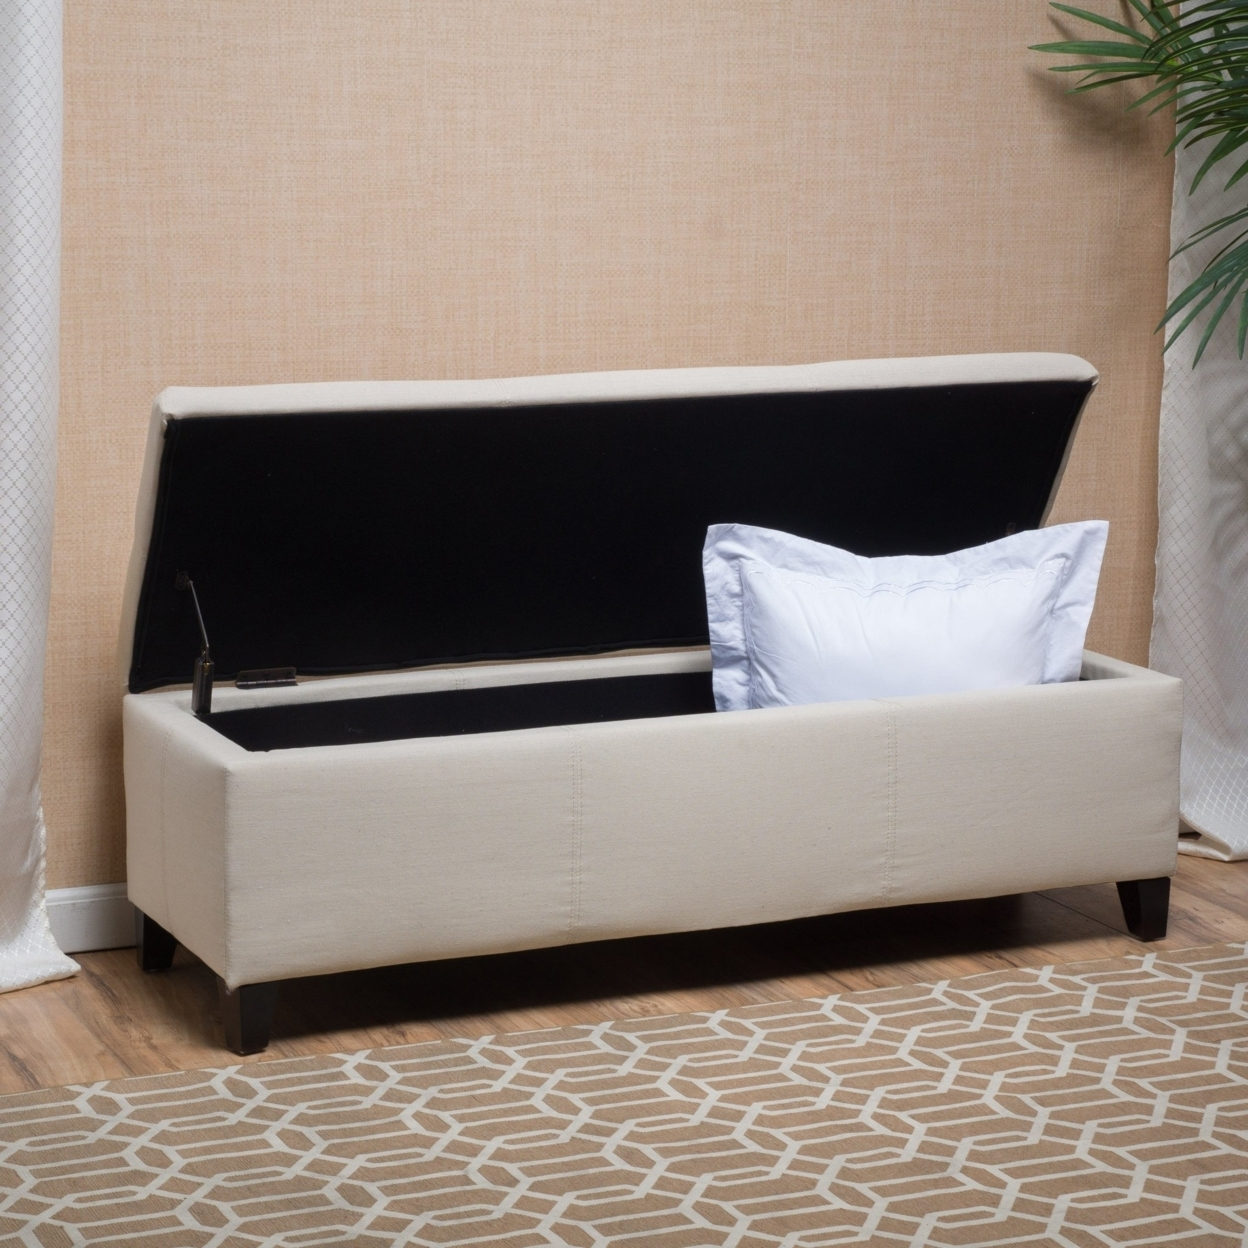 Skyler Beige Fabric Storage Ottoman Bench